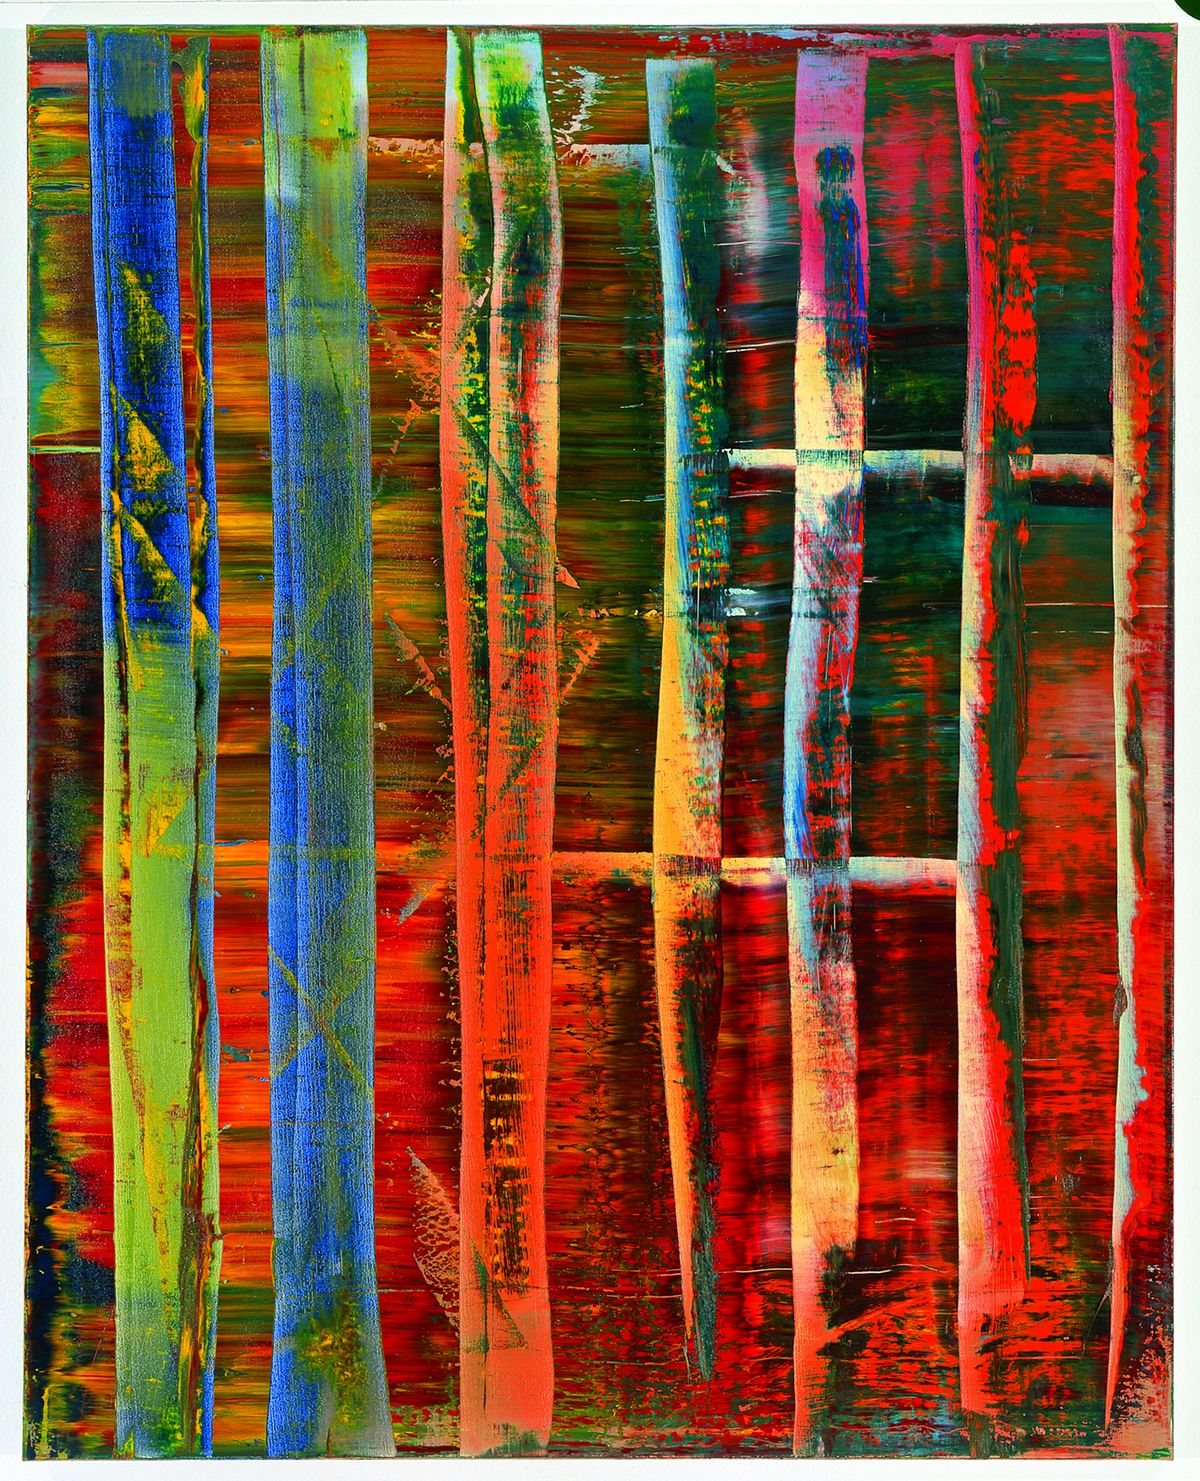 Gerhard Richter, photo musée Frieder Burda, Baden-Baden